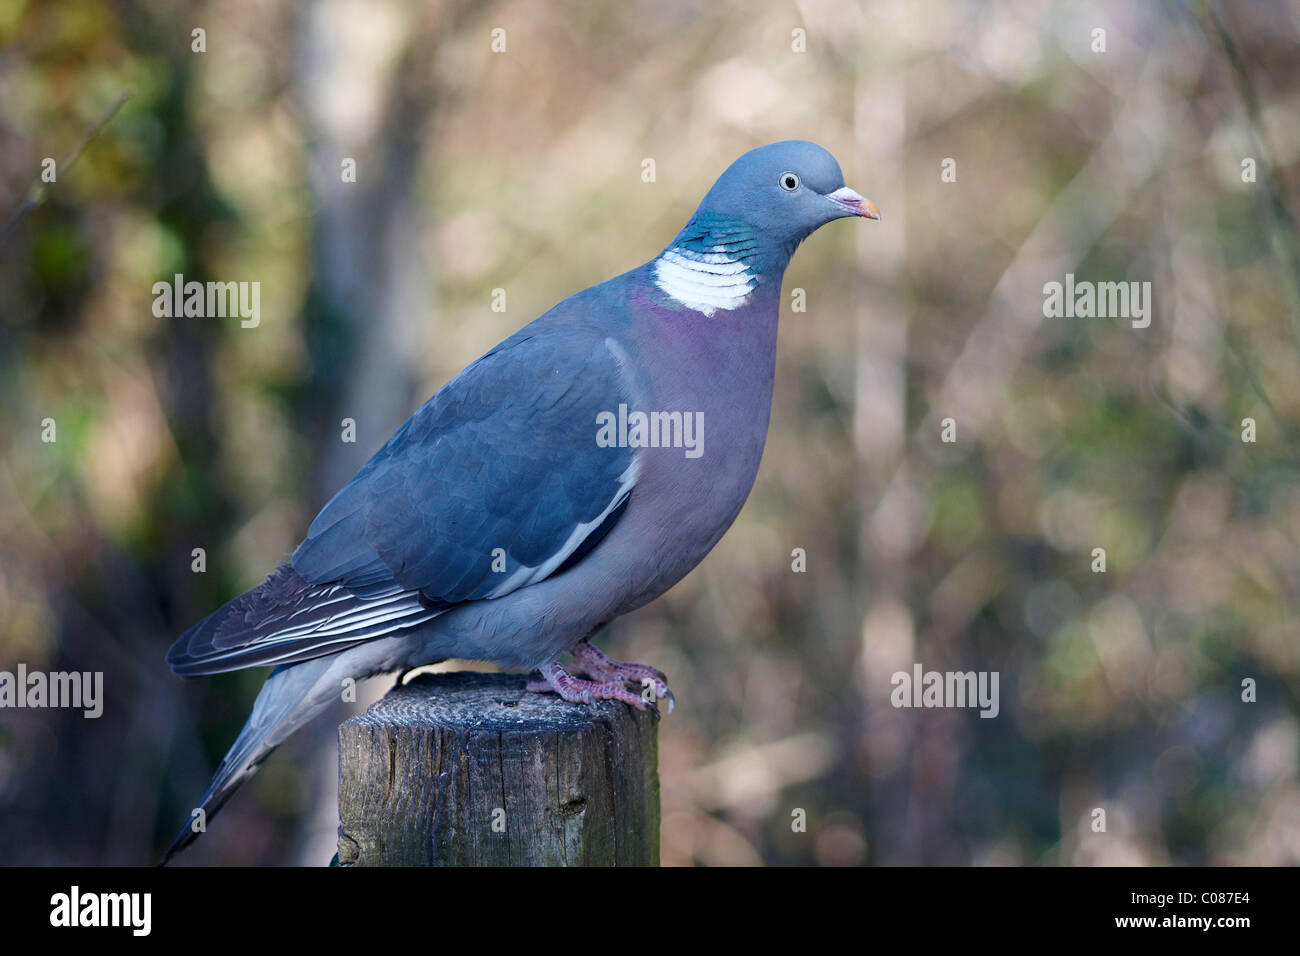 Close-up of Wood Pigeon Columba palaumbus perched on a post - Stock Image